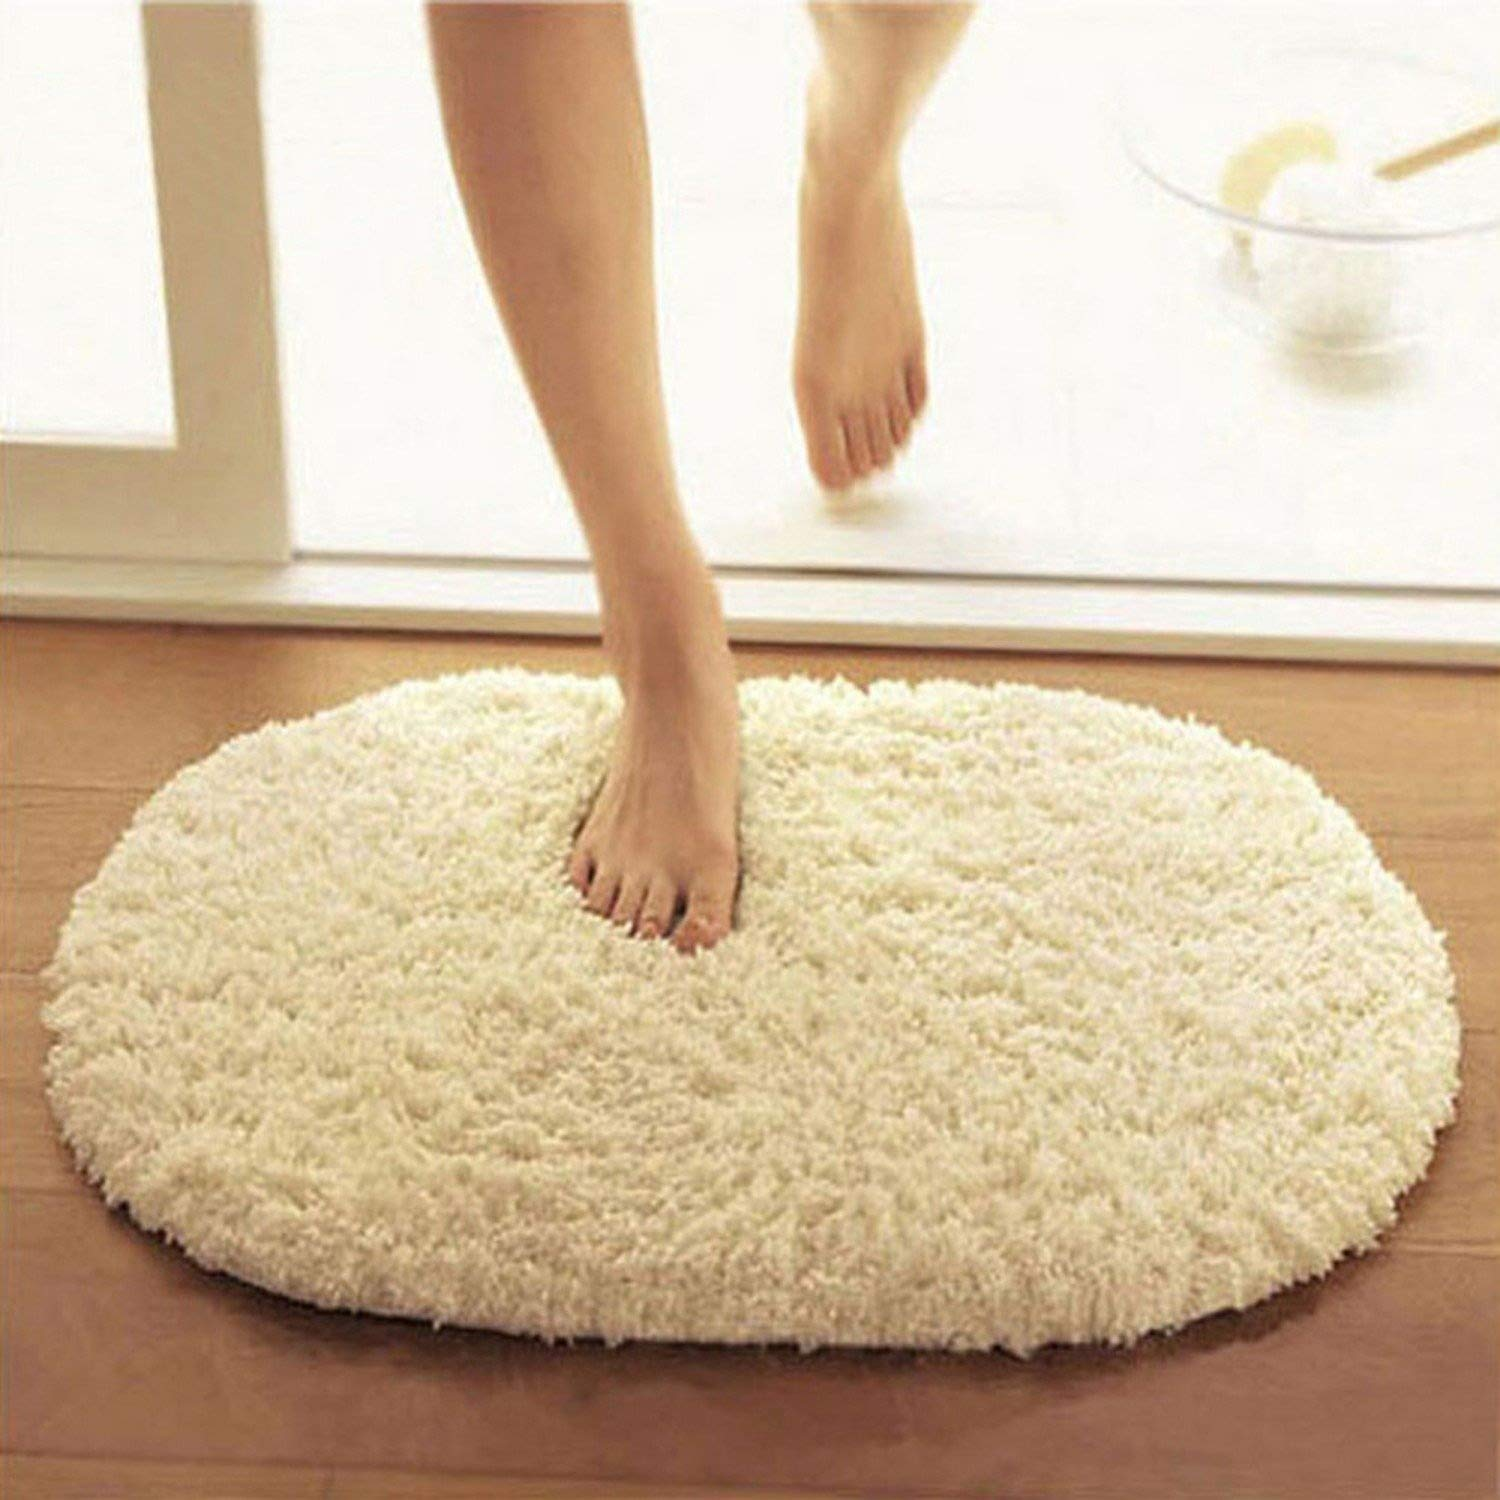 Bathroom Carpets Absorbent Soft Memory Foam Doormat Floor Rugs Oval Non-Slip Bath Mats 40 x 60cm CCNN Company